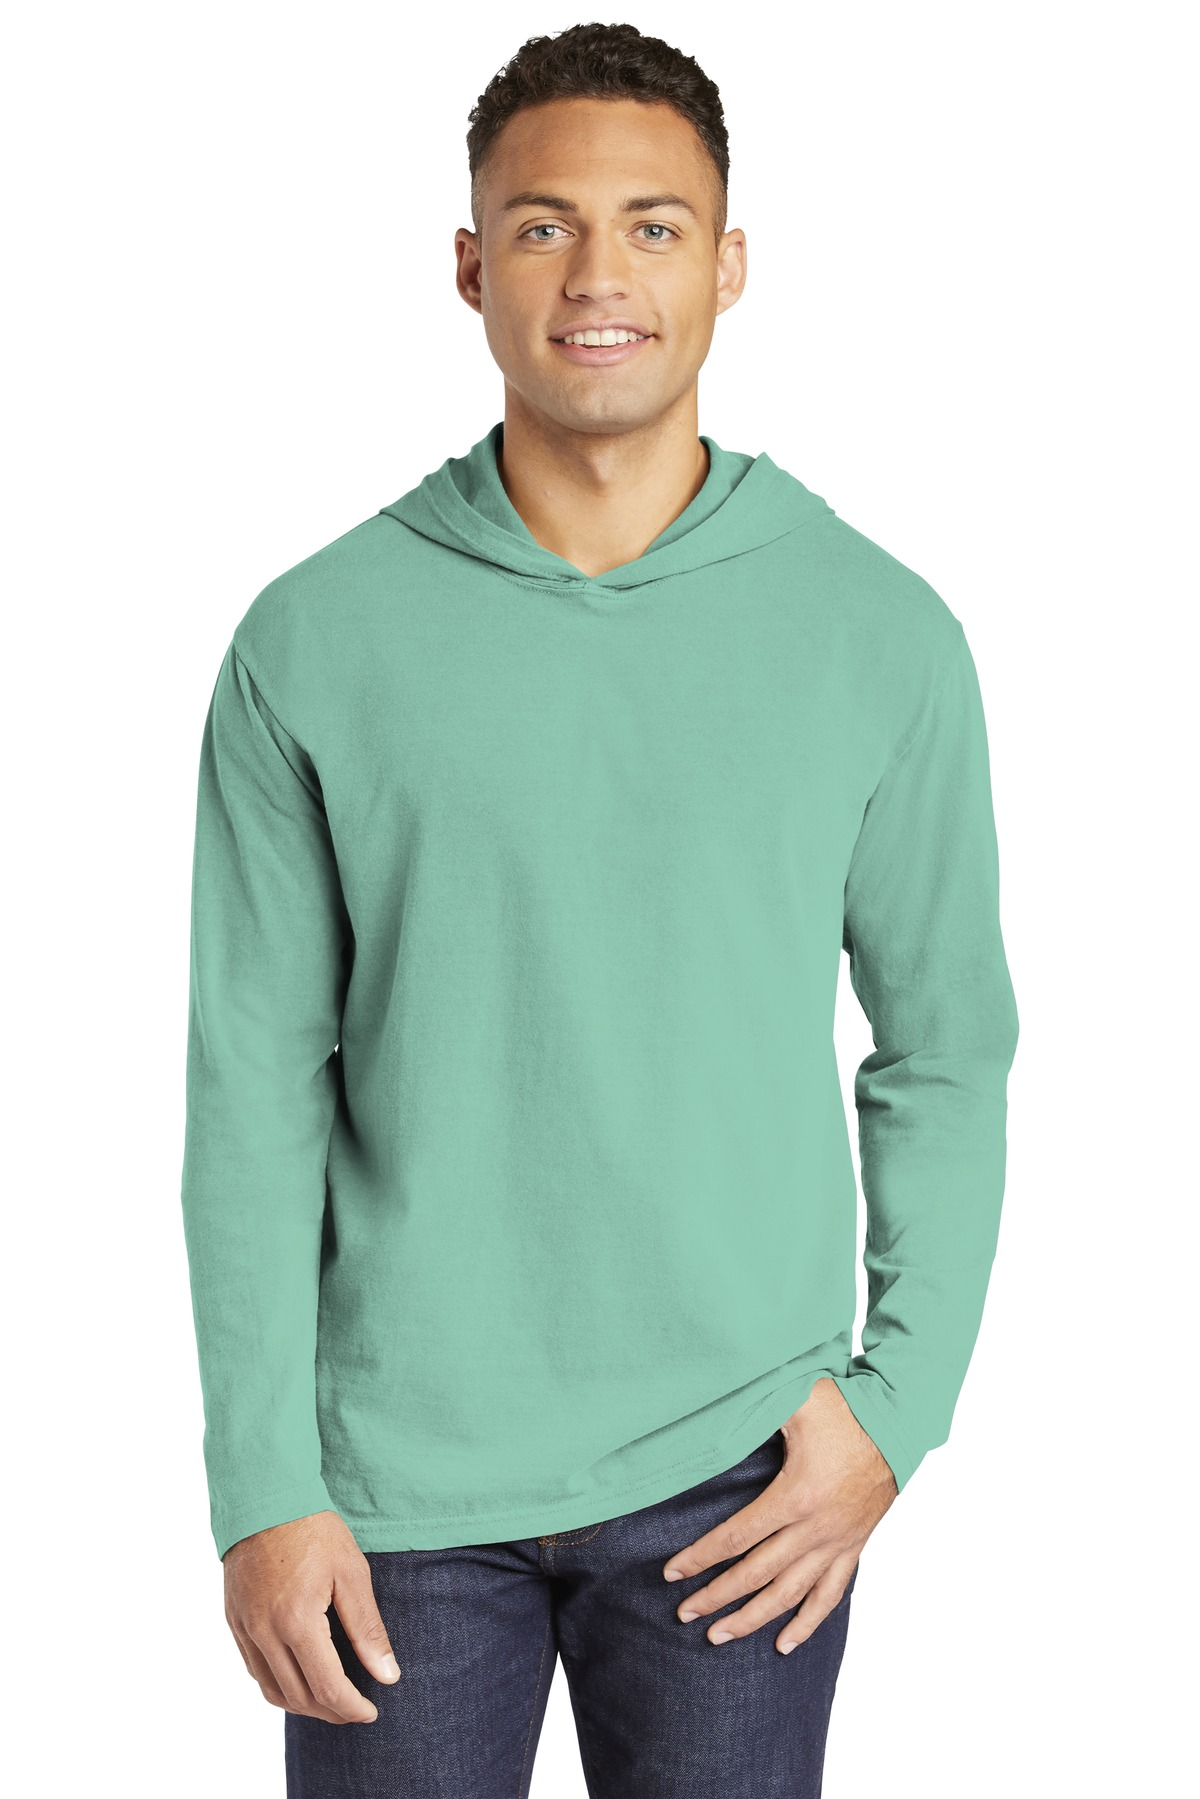 COMFORT COLORS  ®  Heavyweight Ring Spun Long Sleeve Hooded Tee. 4900 - Chalky Mint